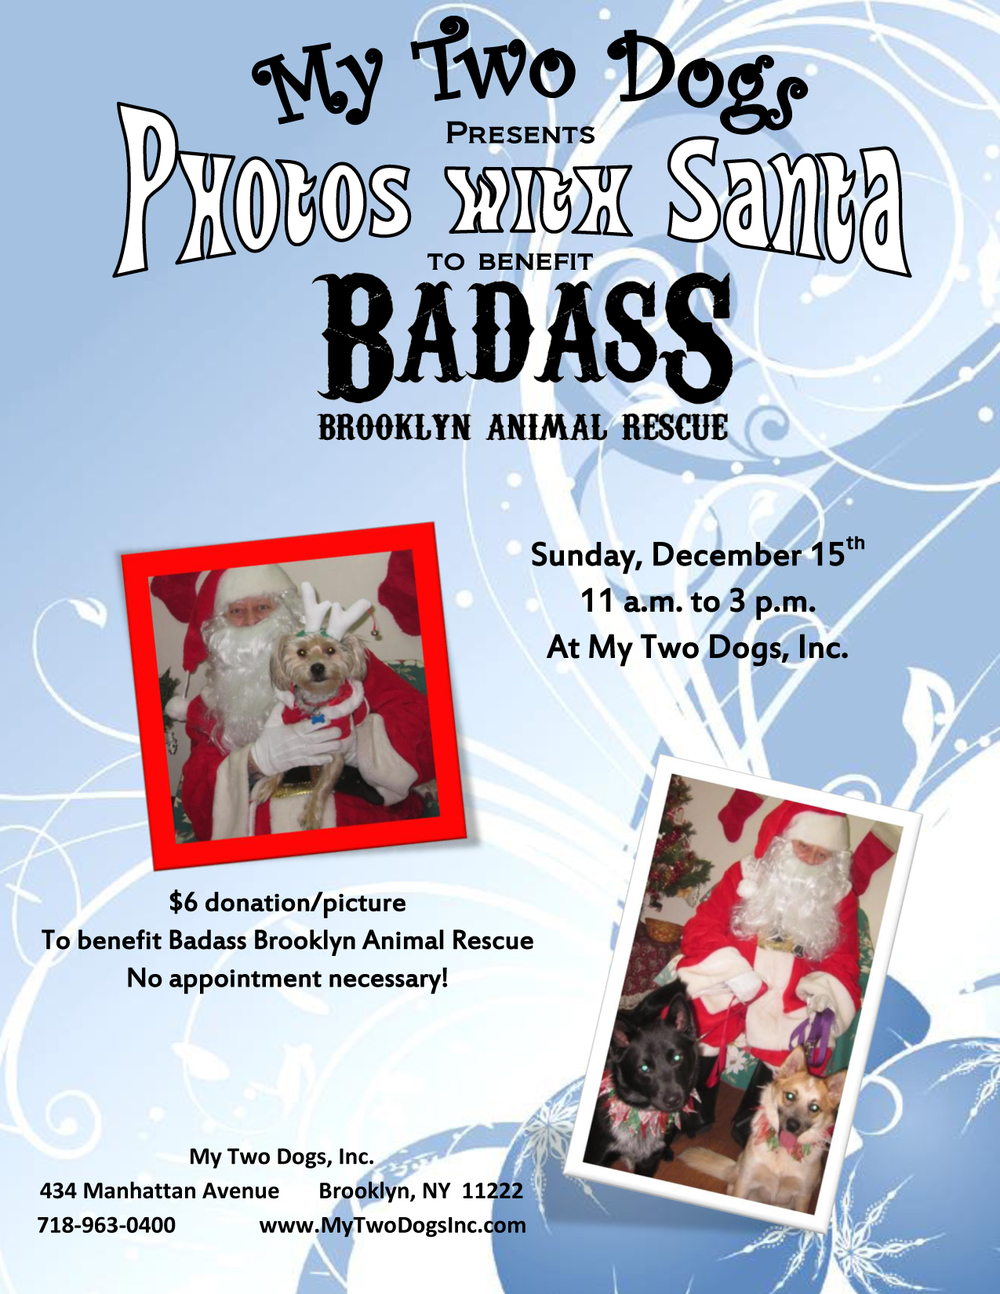 MyTwoDogs_PhotowSanta_Flyer.jpg